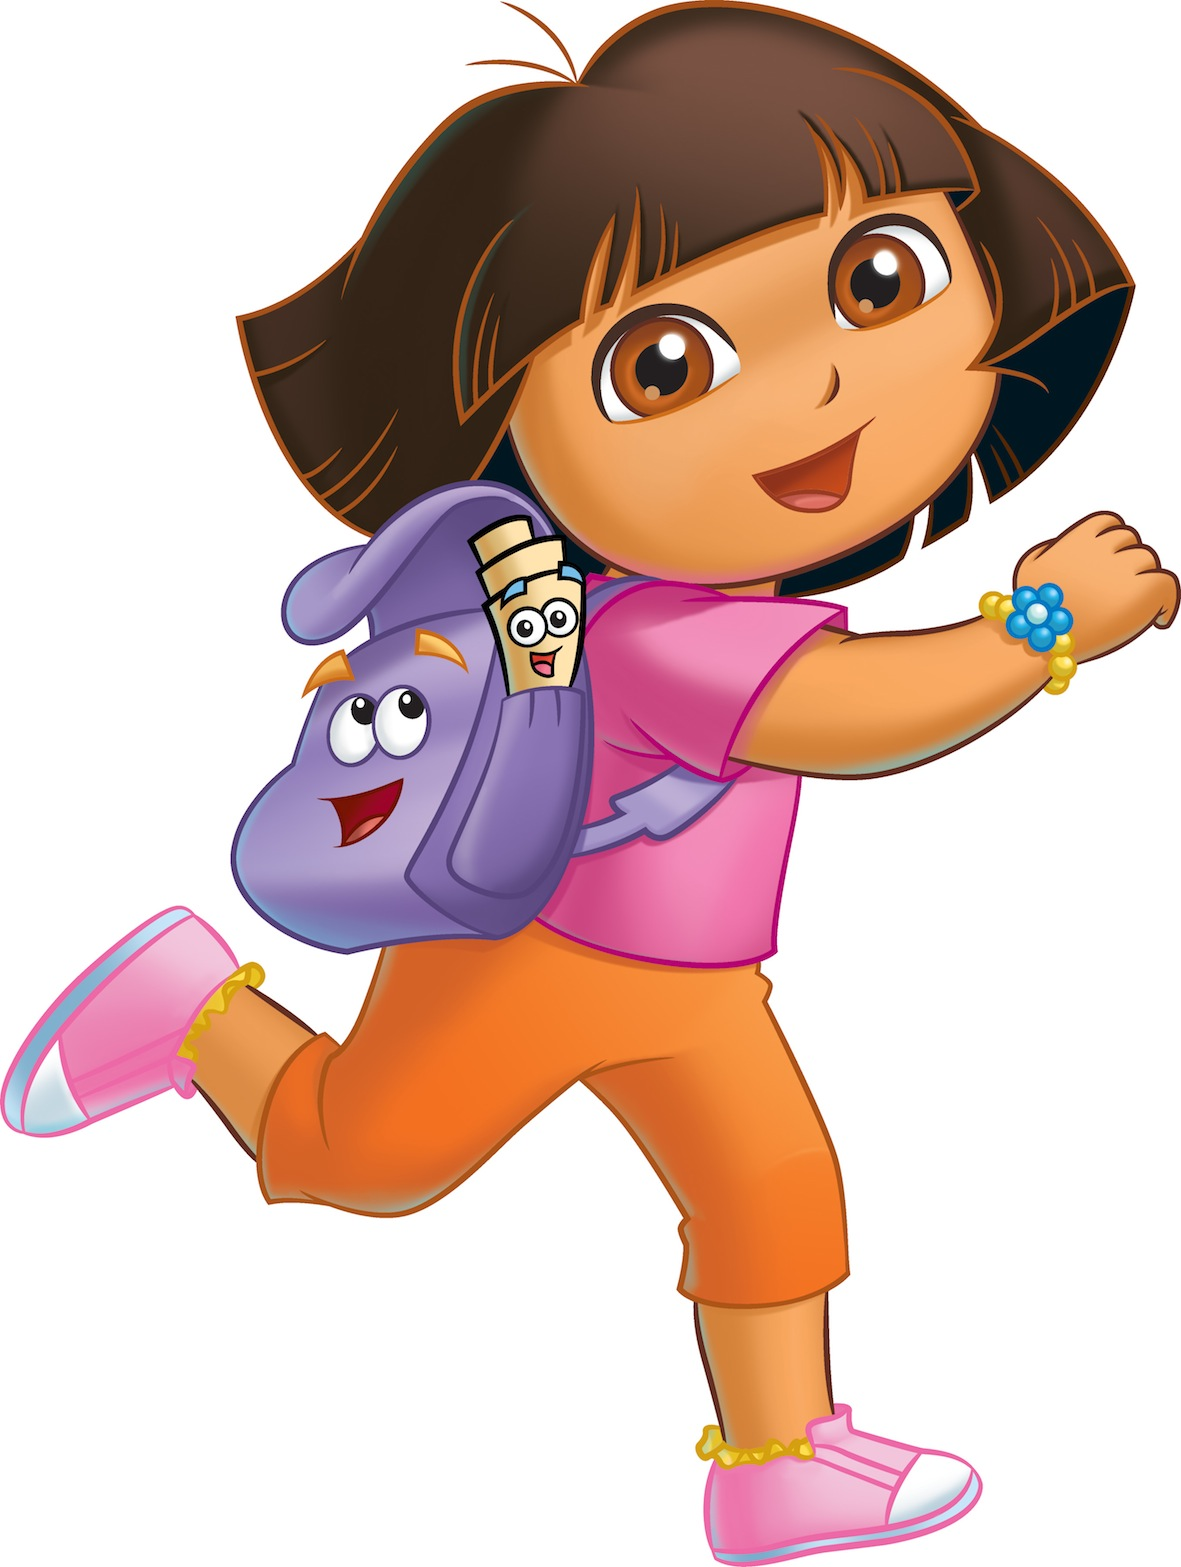 Dora the explorer new look